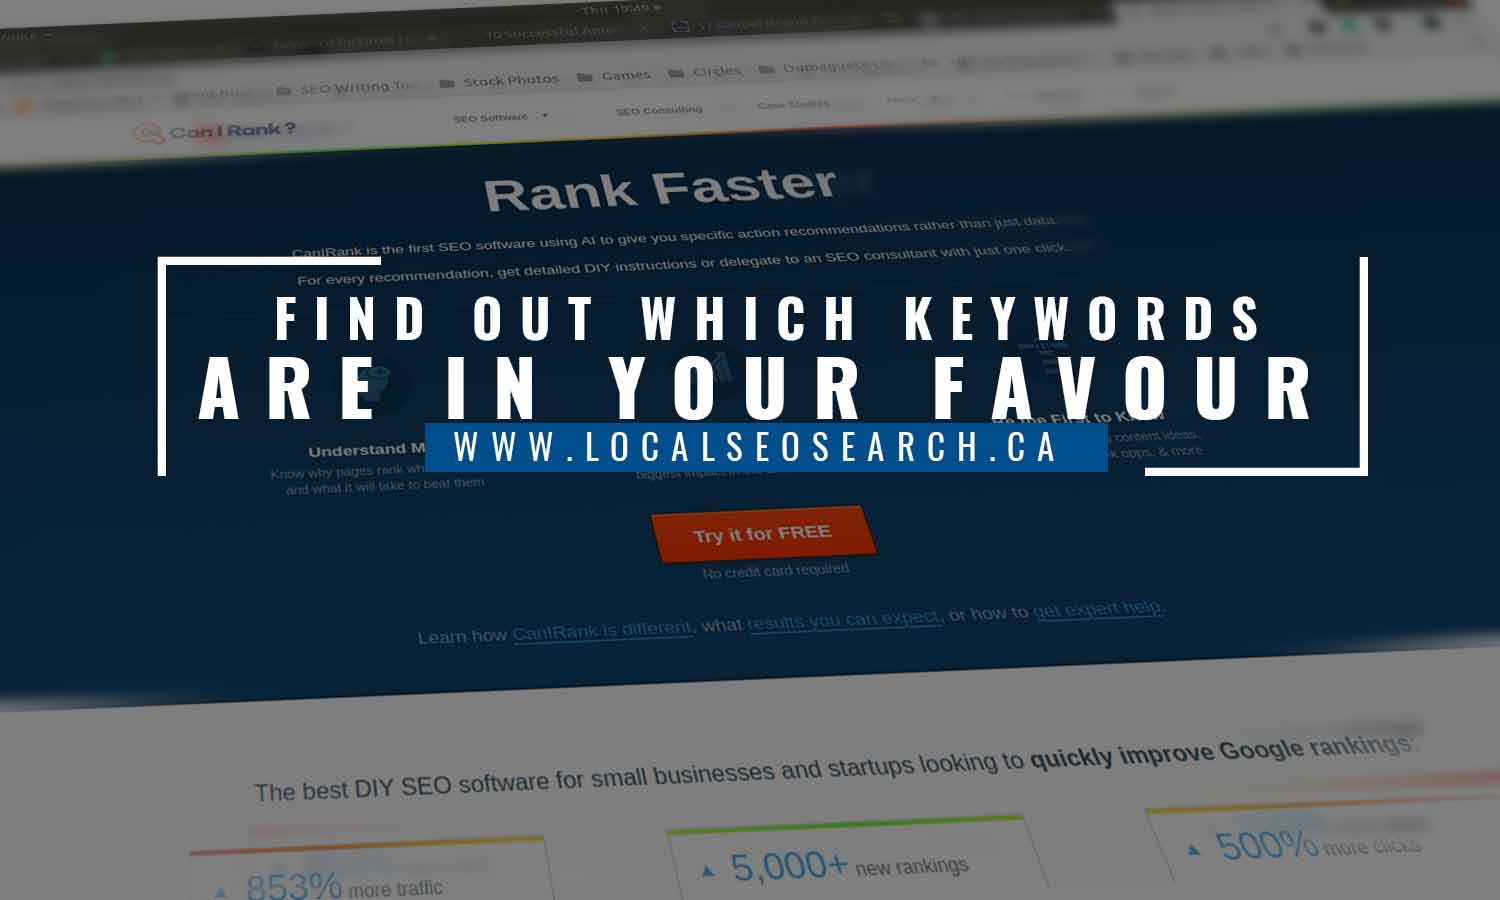 Find-out-which-keywords-are-in-your-favour